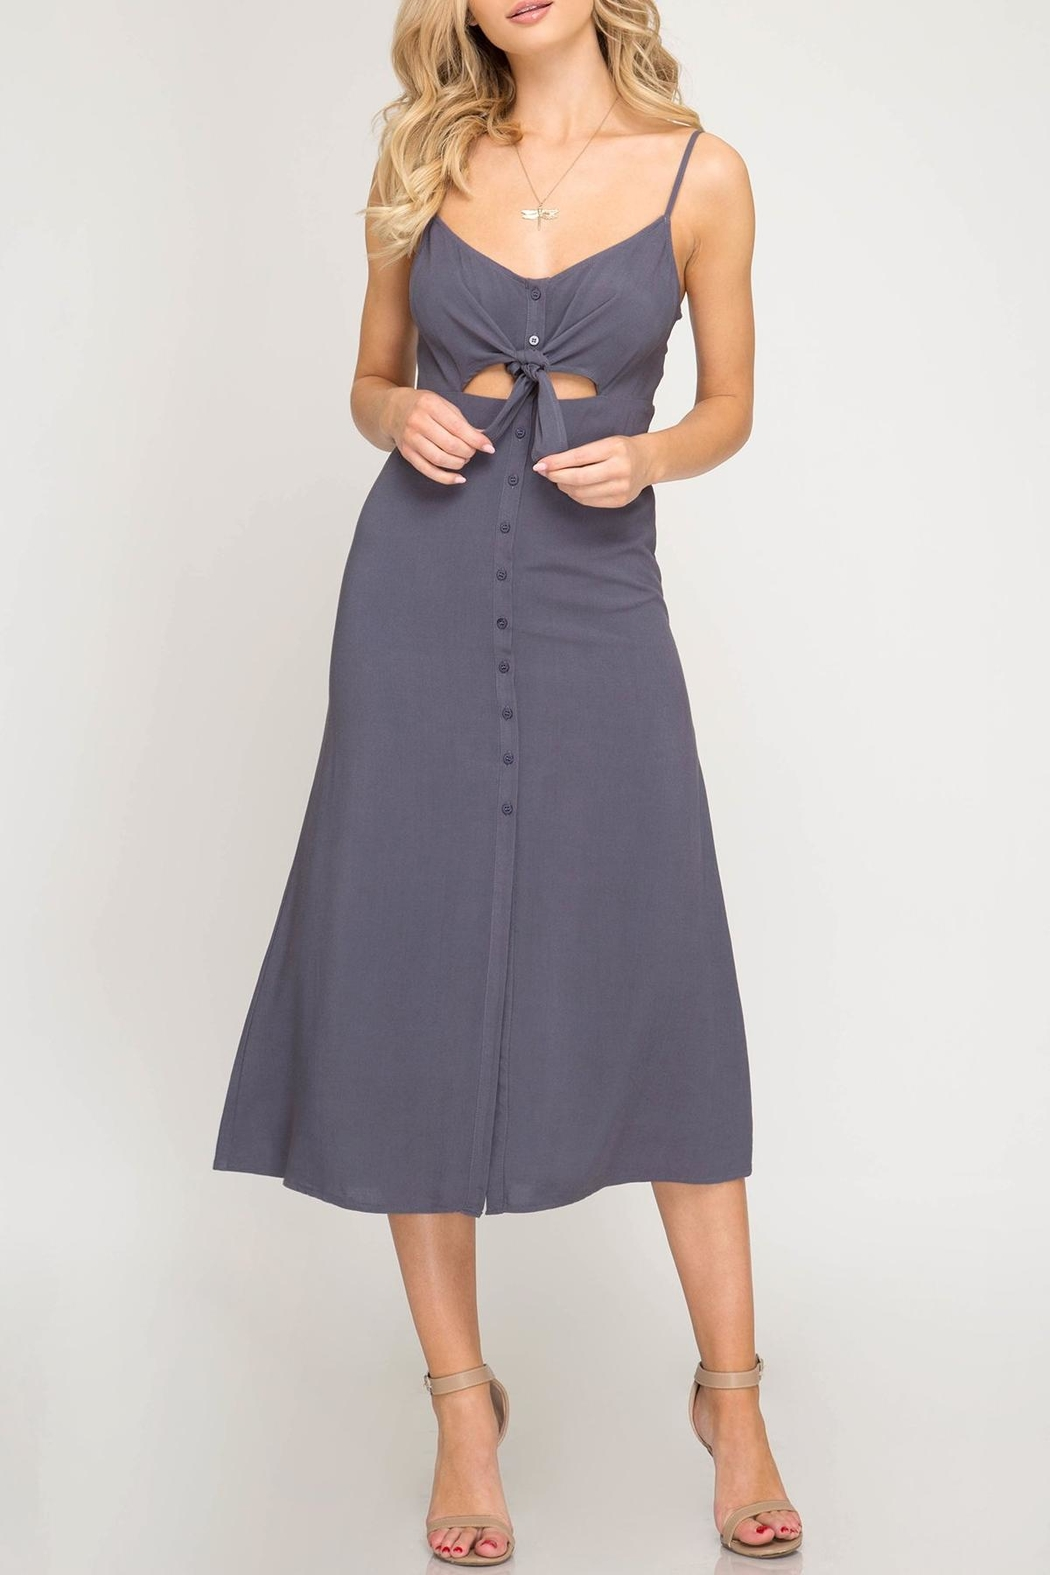 She + Sky Front-Tie Button Midi-Dress - Main Image